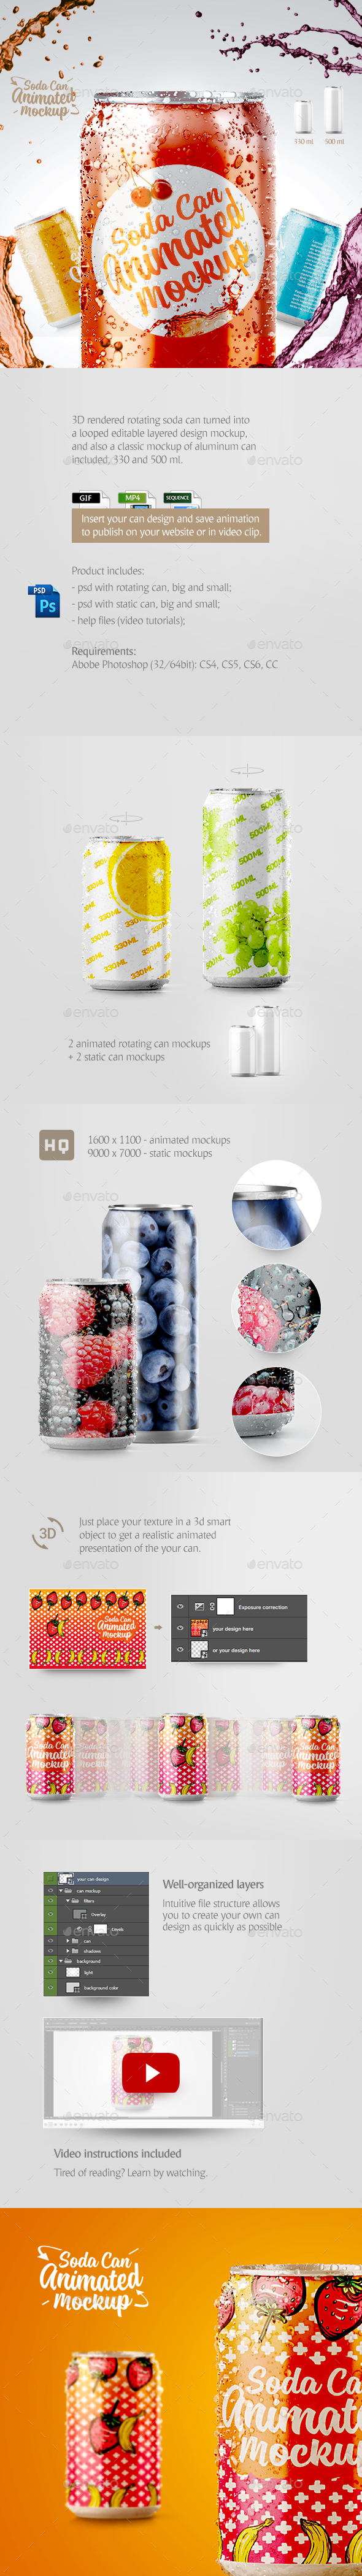 Soda Can Animated Mockup - Food and Drink Packaging